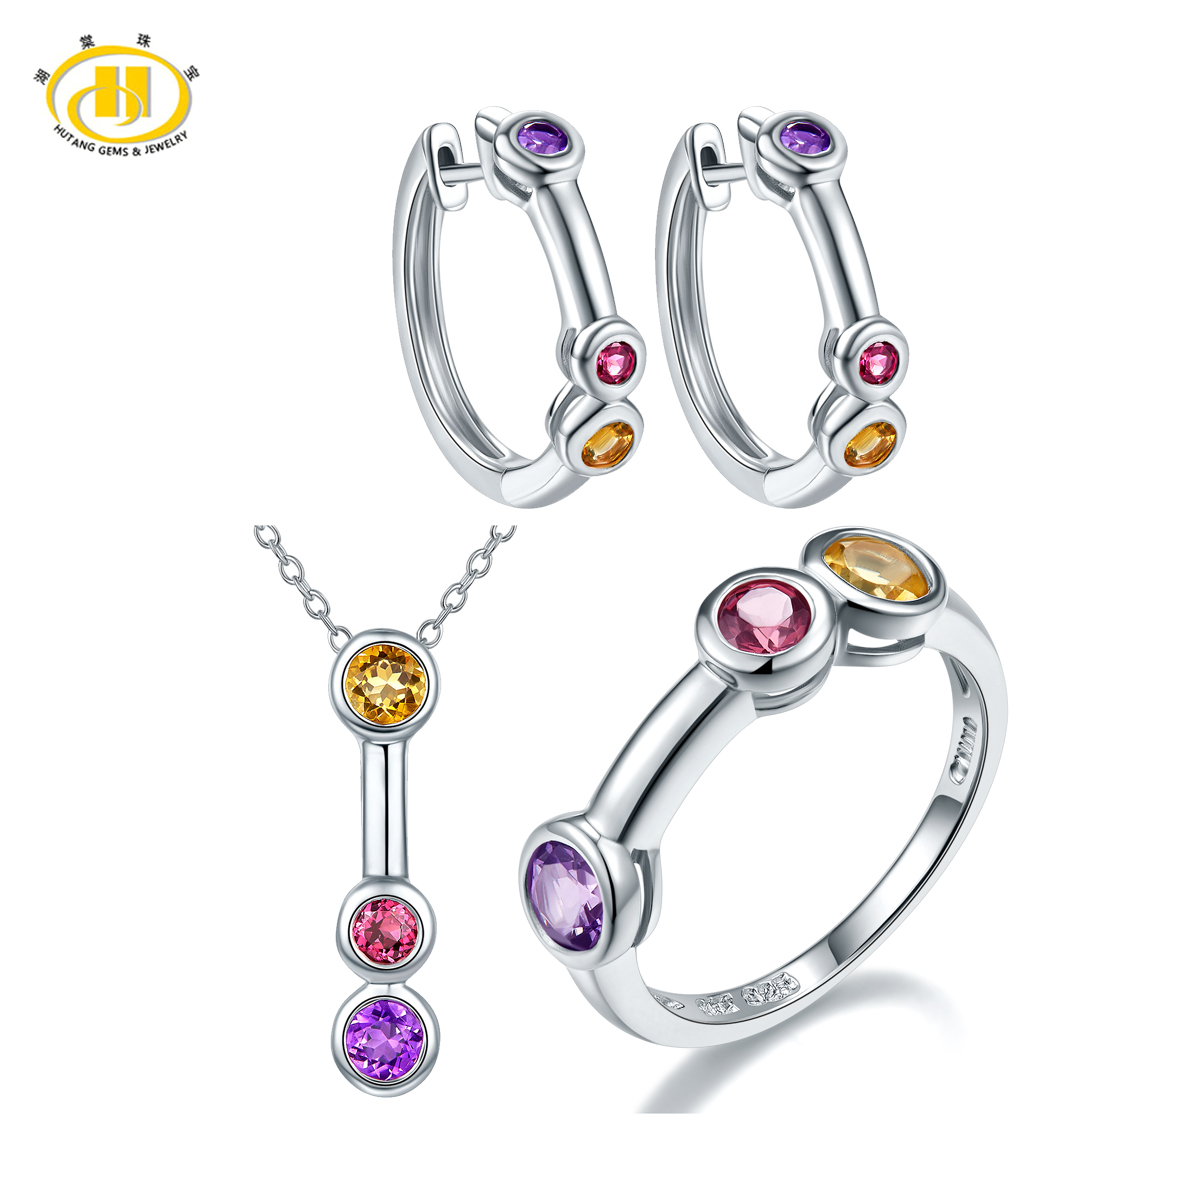 Hutang 3-stone Classic Multi-color Gemstone Jewelry Sets for Women Solid 925 Sterling Silver Ring Pendant Earrings Stylish Style stylish solid color batwing sleeve asymmetrical tops for women